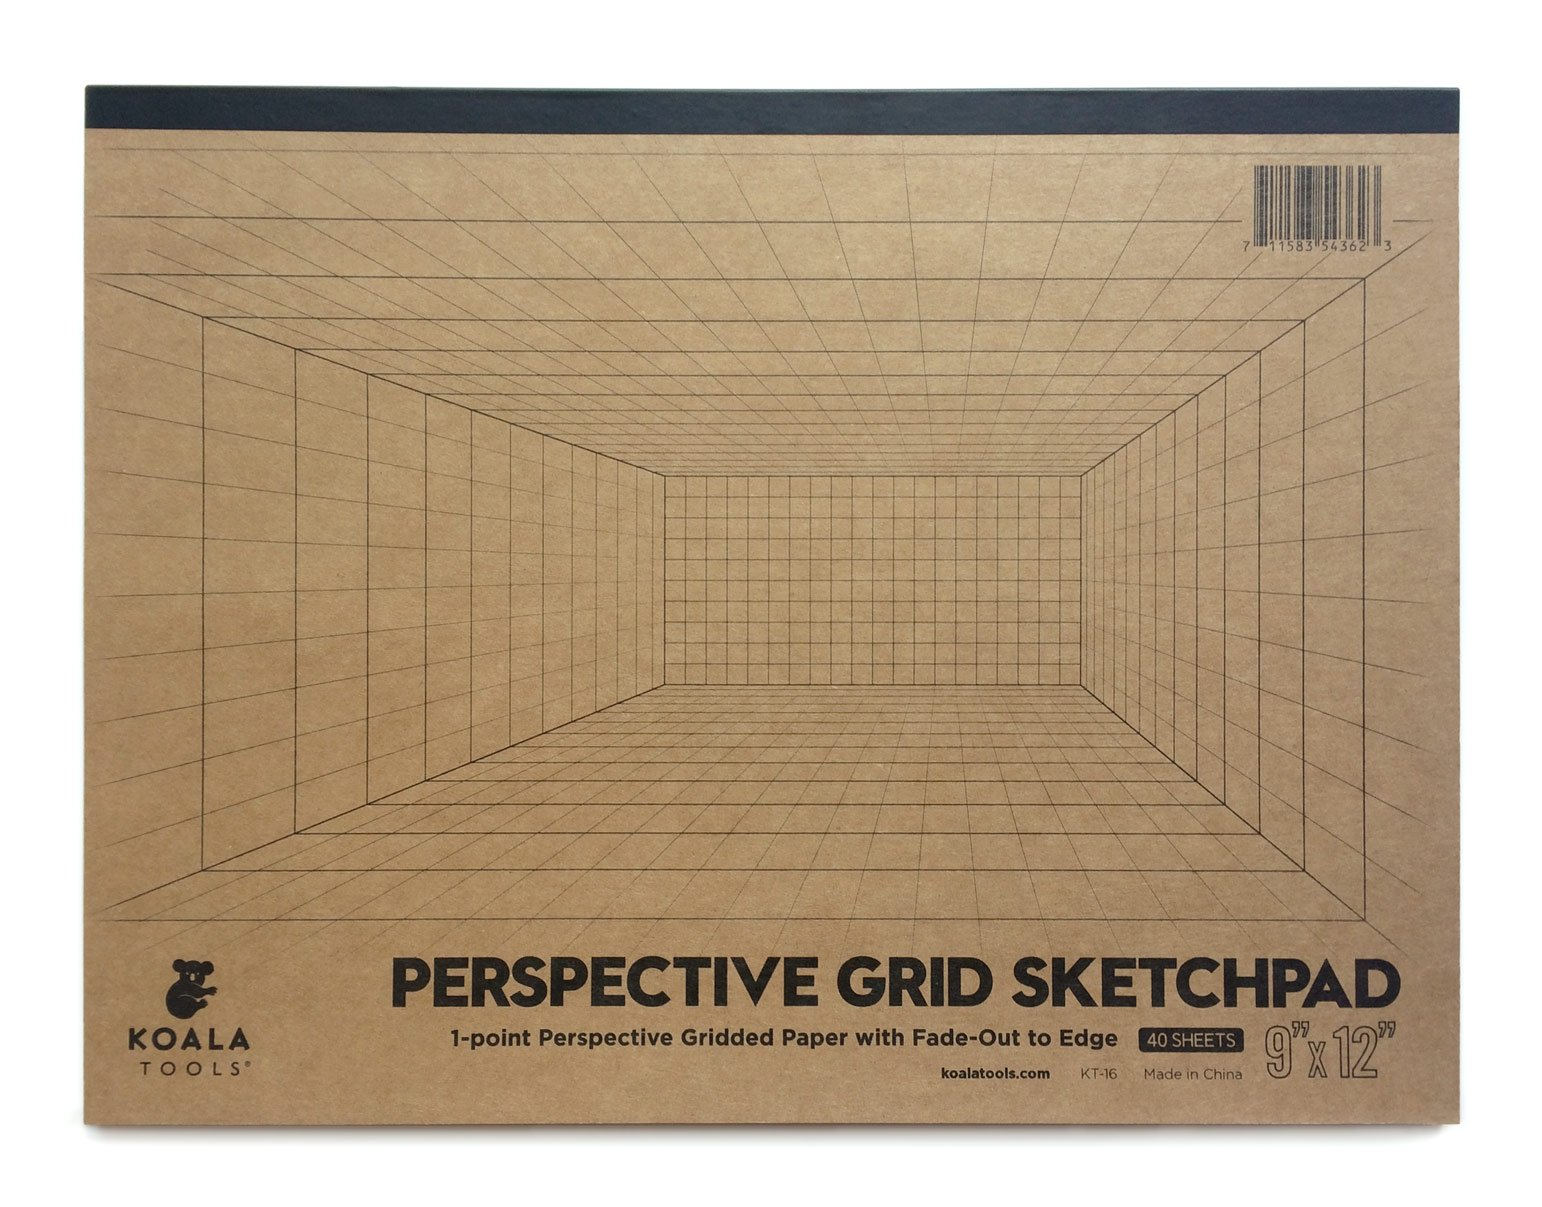 Koala Tools | Room Grid (1-Point) Large Sketch Pad | 9'' x 12'', 40 pp. - Perspective Grid Graph Paper for Interior Room Design, Industrial, Architectural and 3D Design by KOALA TOOLS